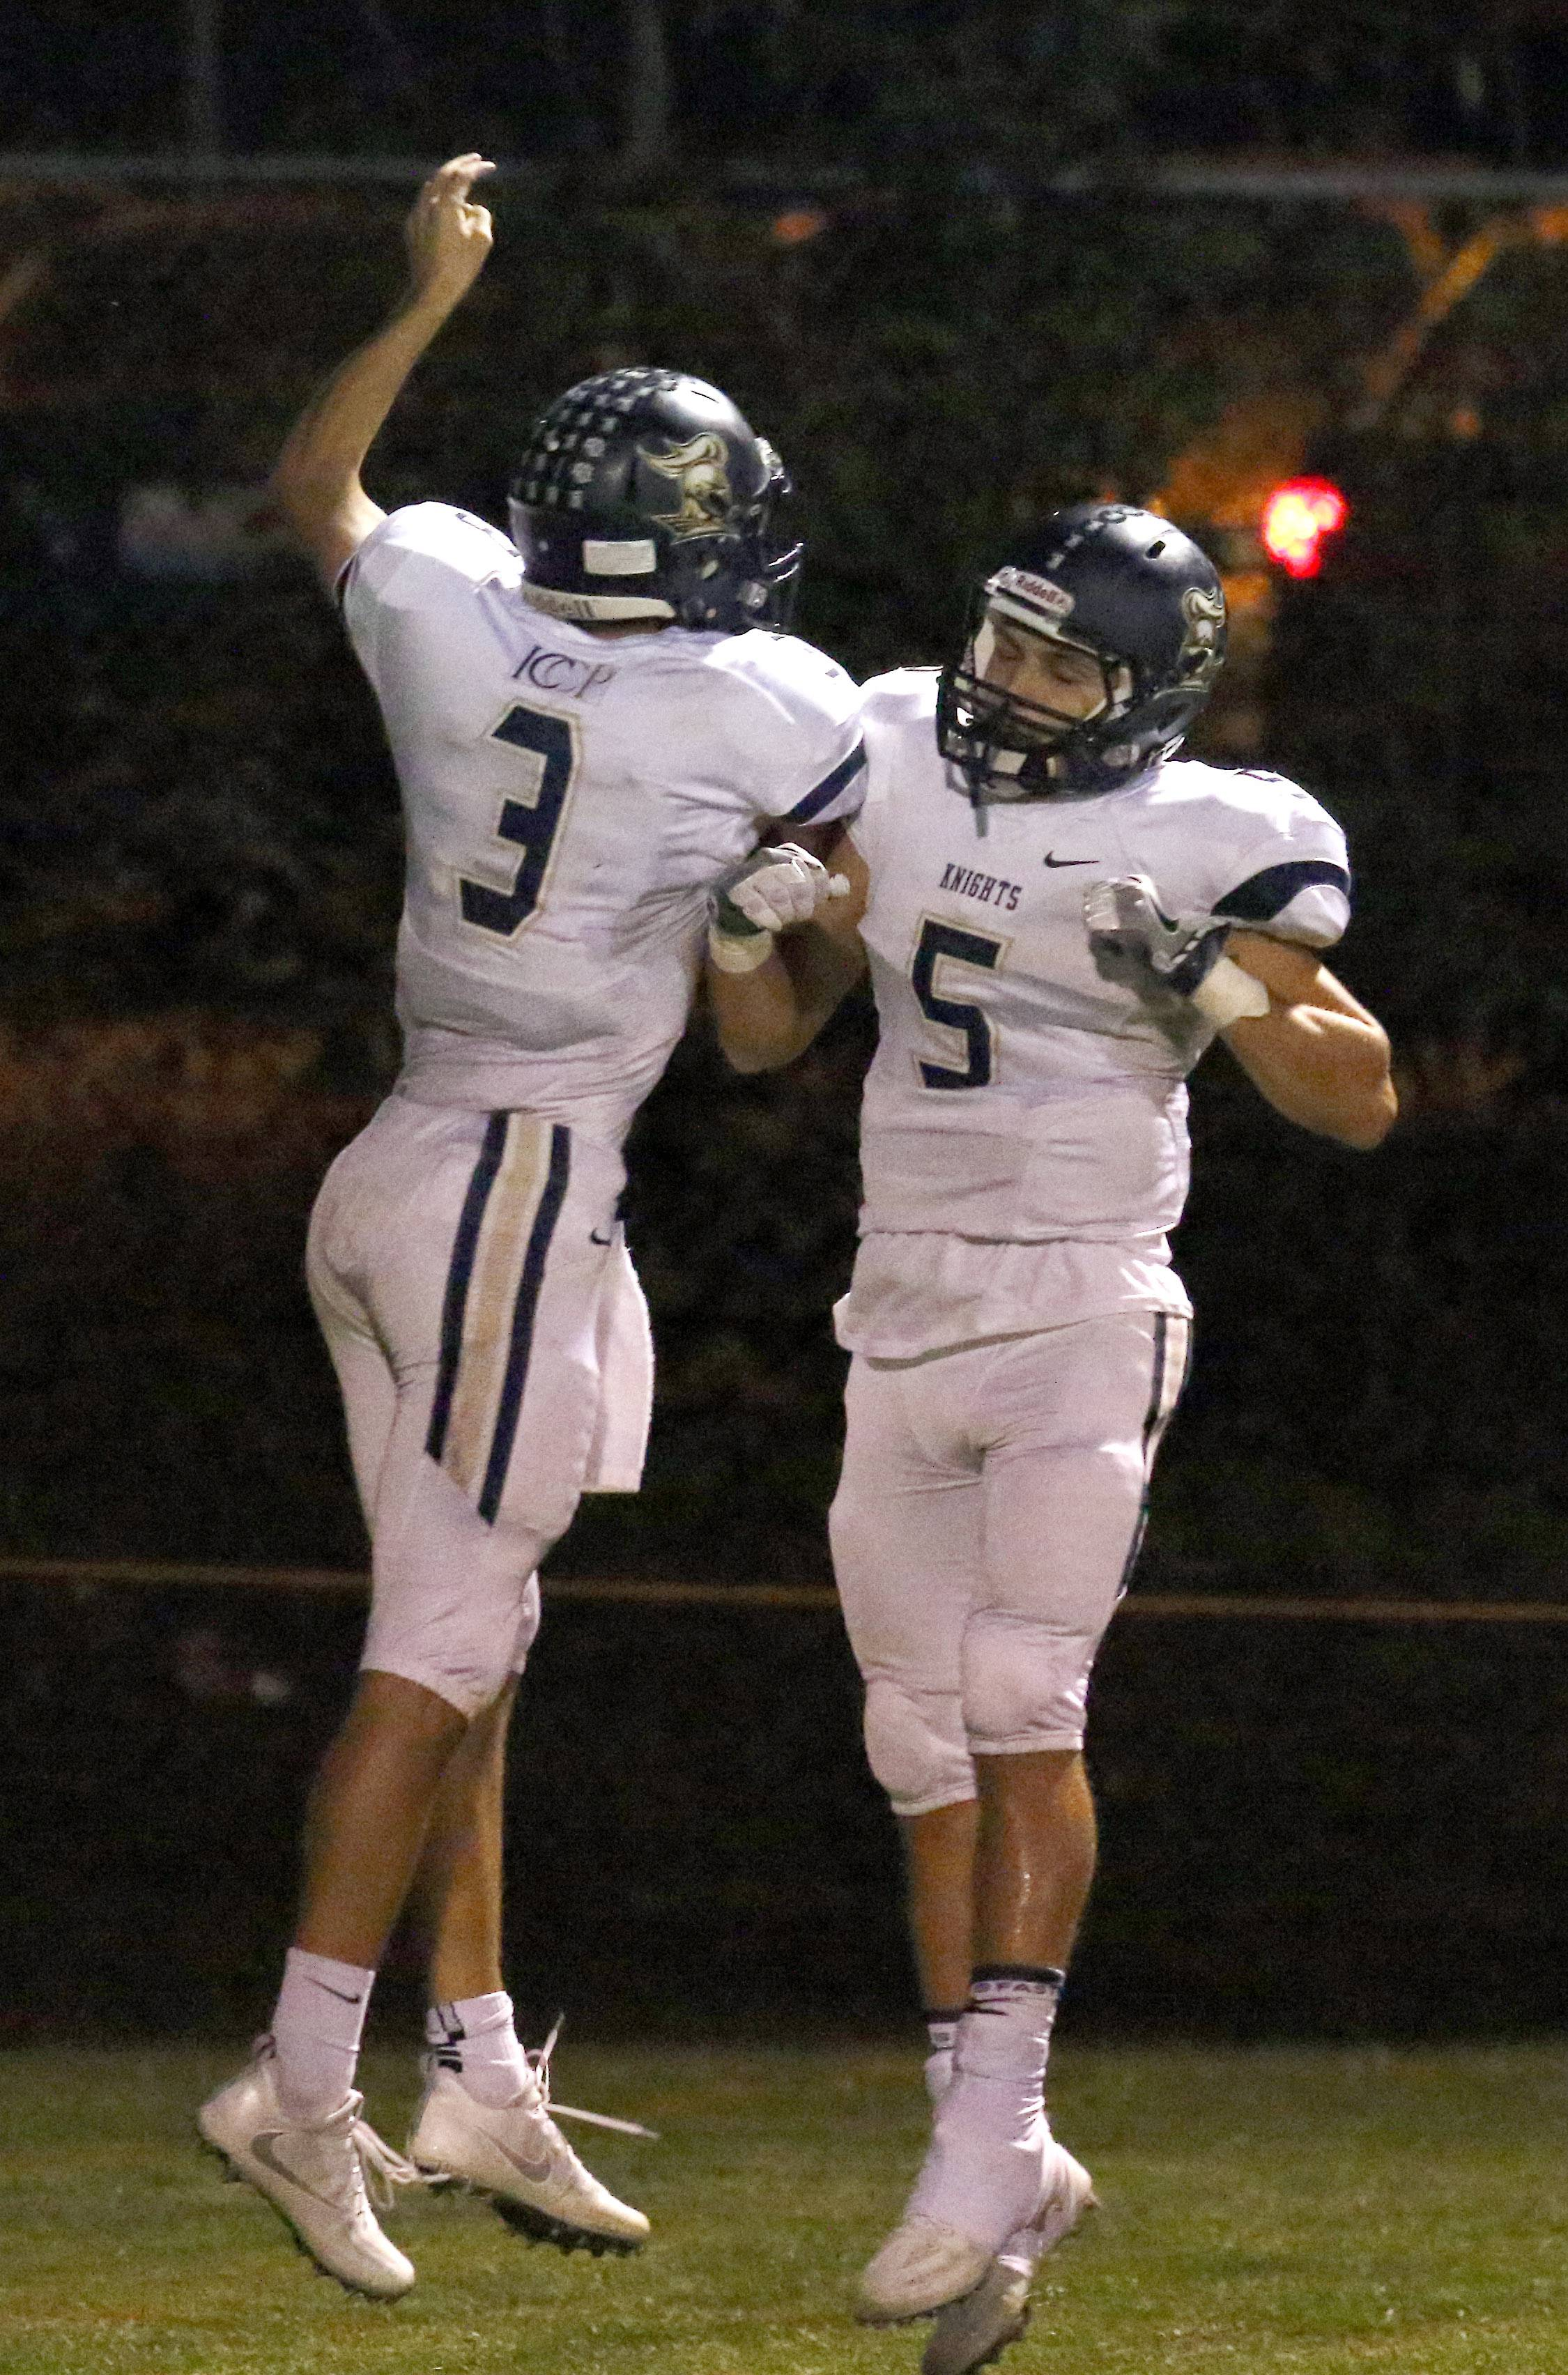 IC Catholic's Luke Ricobene celebrates with teammate Matt Sutton (5) after his touchdown at Greg True Field in Elgin Friday night.